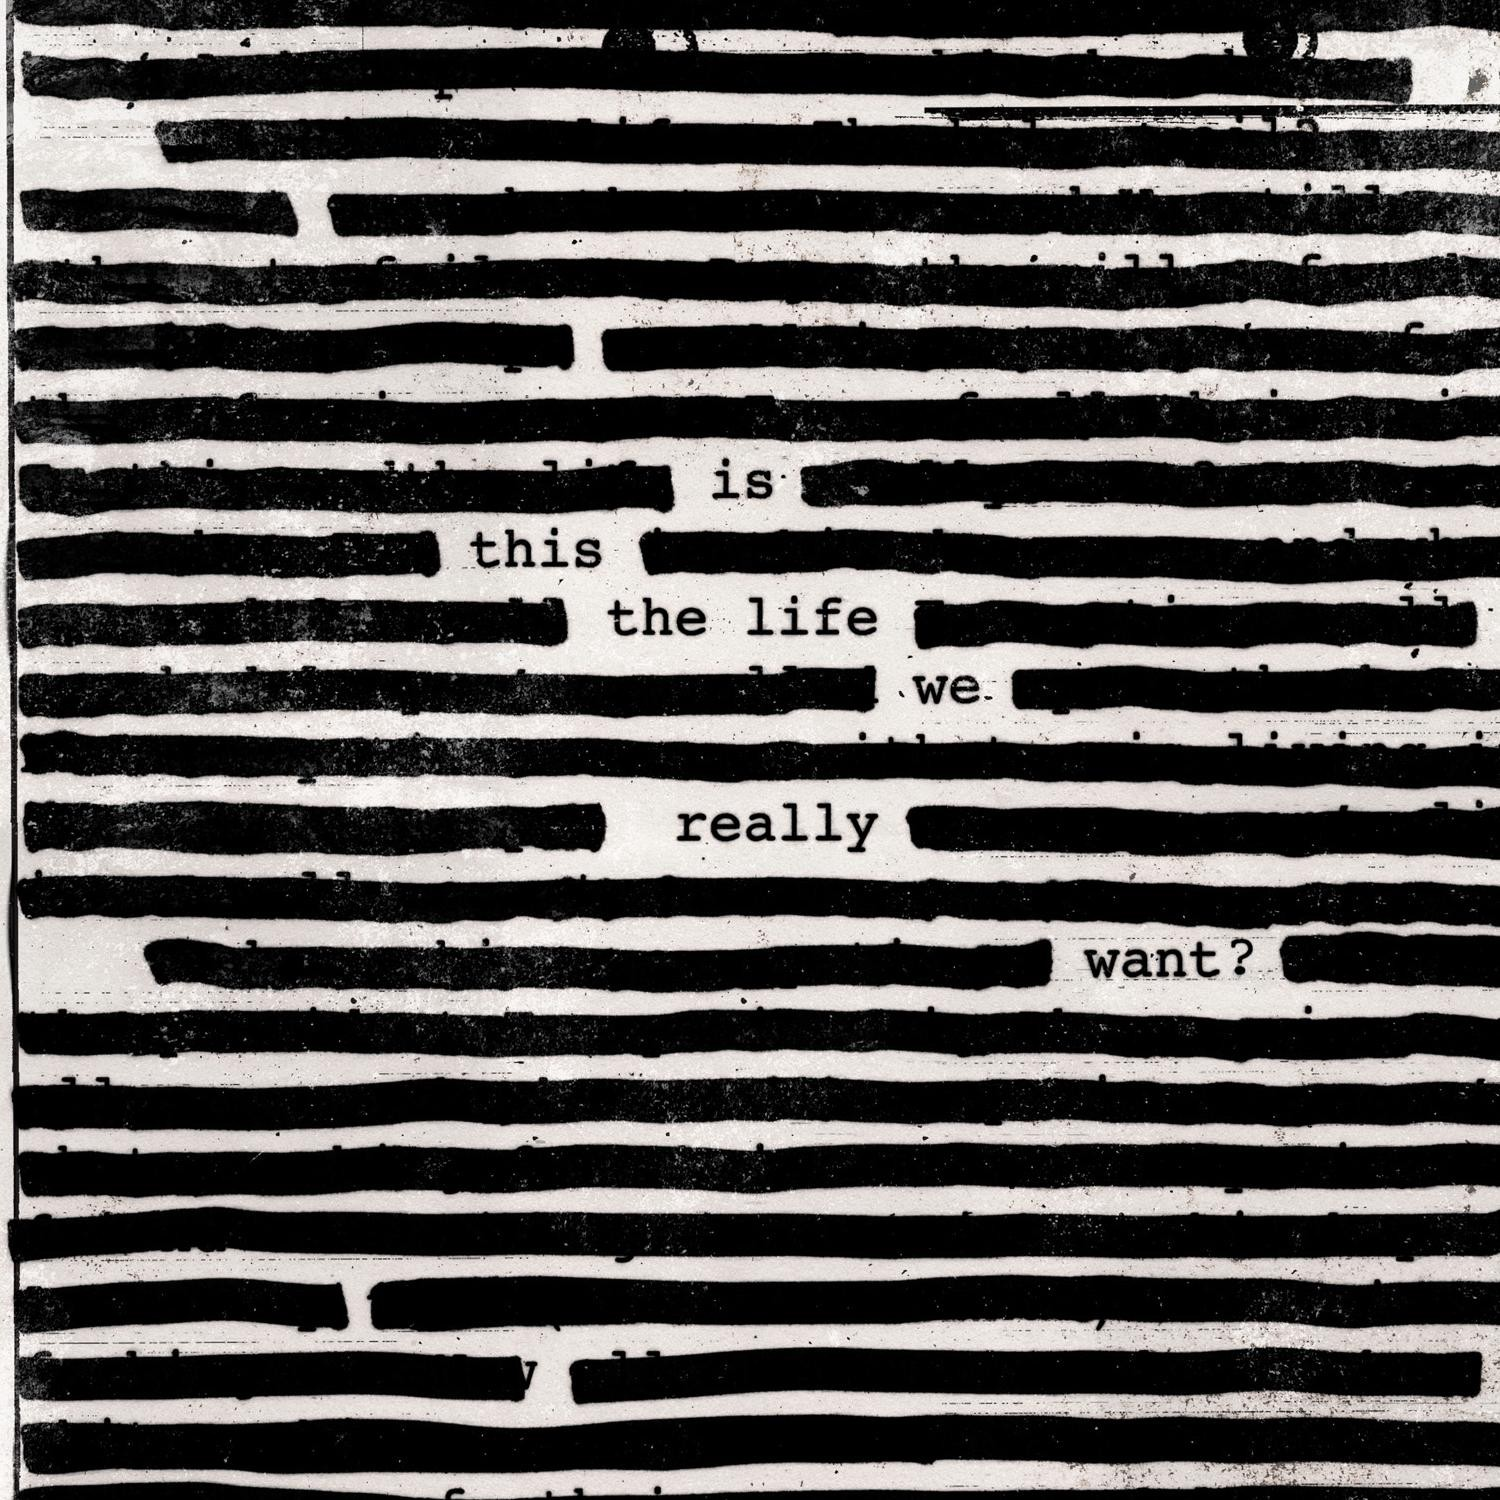 Essay Writing Scholarships For High School Students This Is A Review Of Roger Waters Is This The Life We Really Want  A   Release Writing Essay Papers also Global Warming Essay Thesis On Is This The Life We Really Want Roger Waters Presents   Essay Writing Topics For High School Students